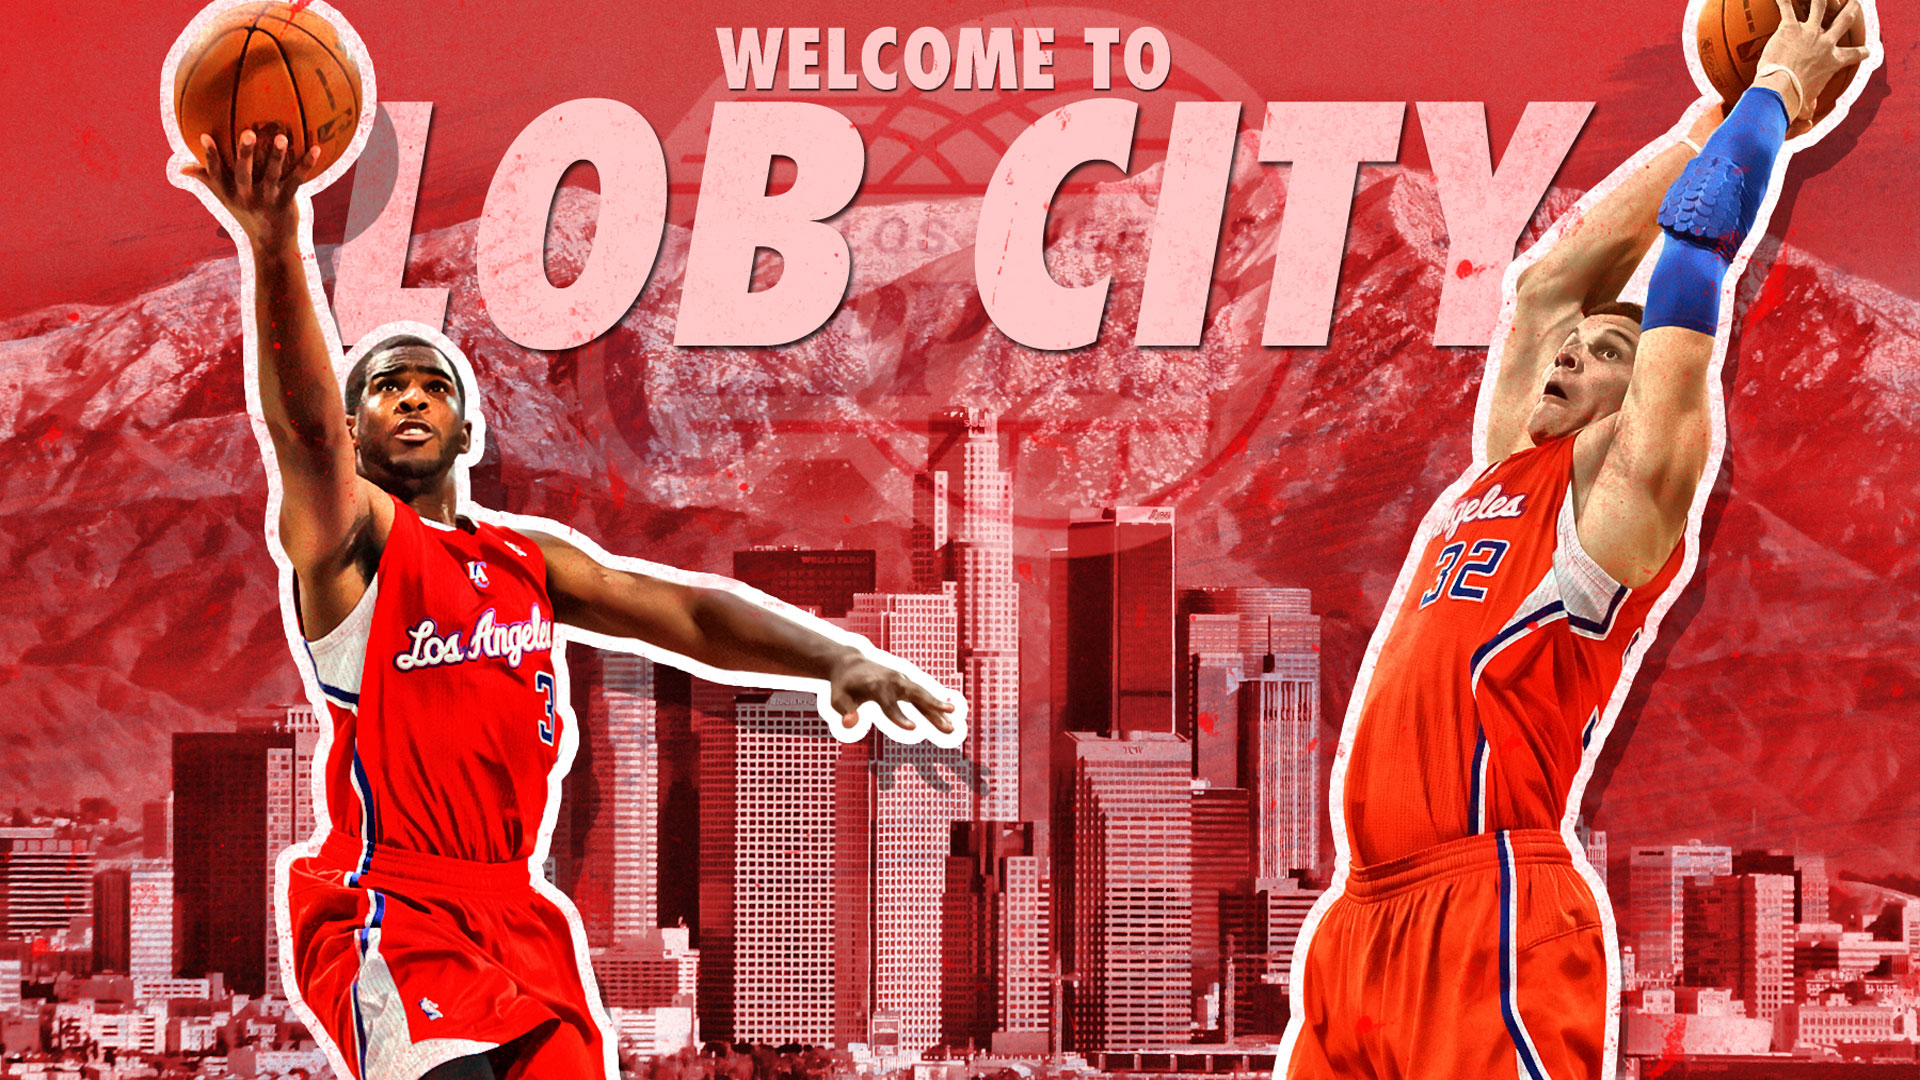 Lob City Wallpaper